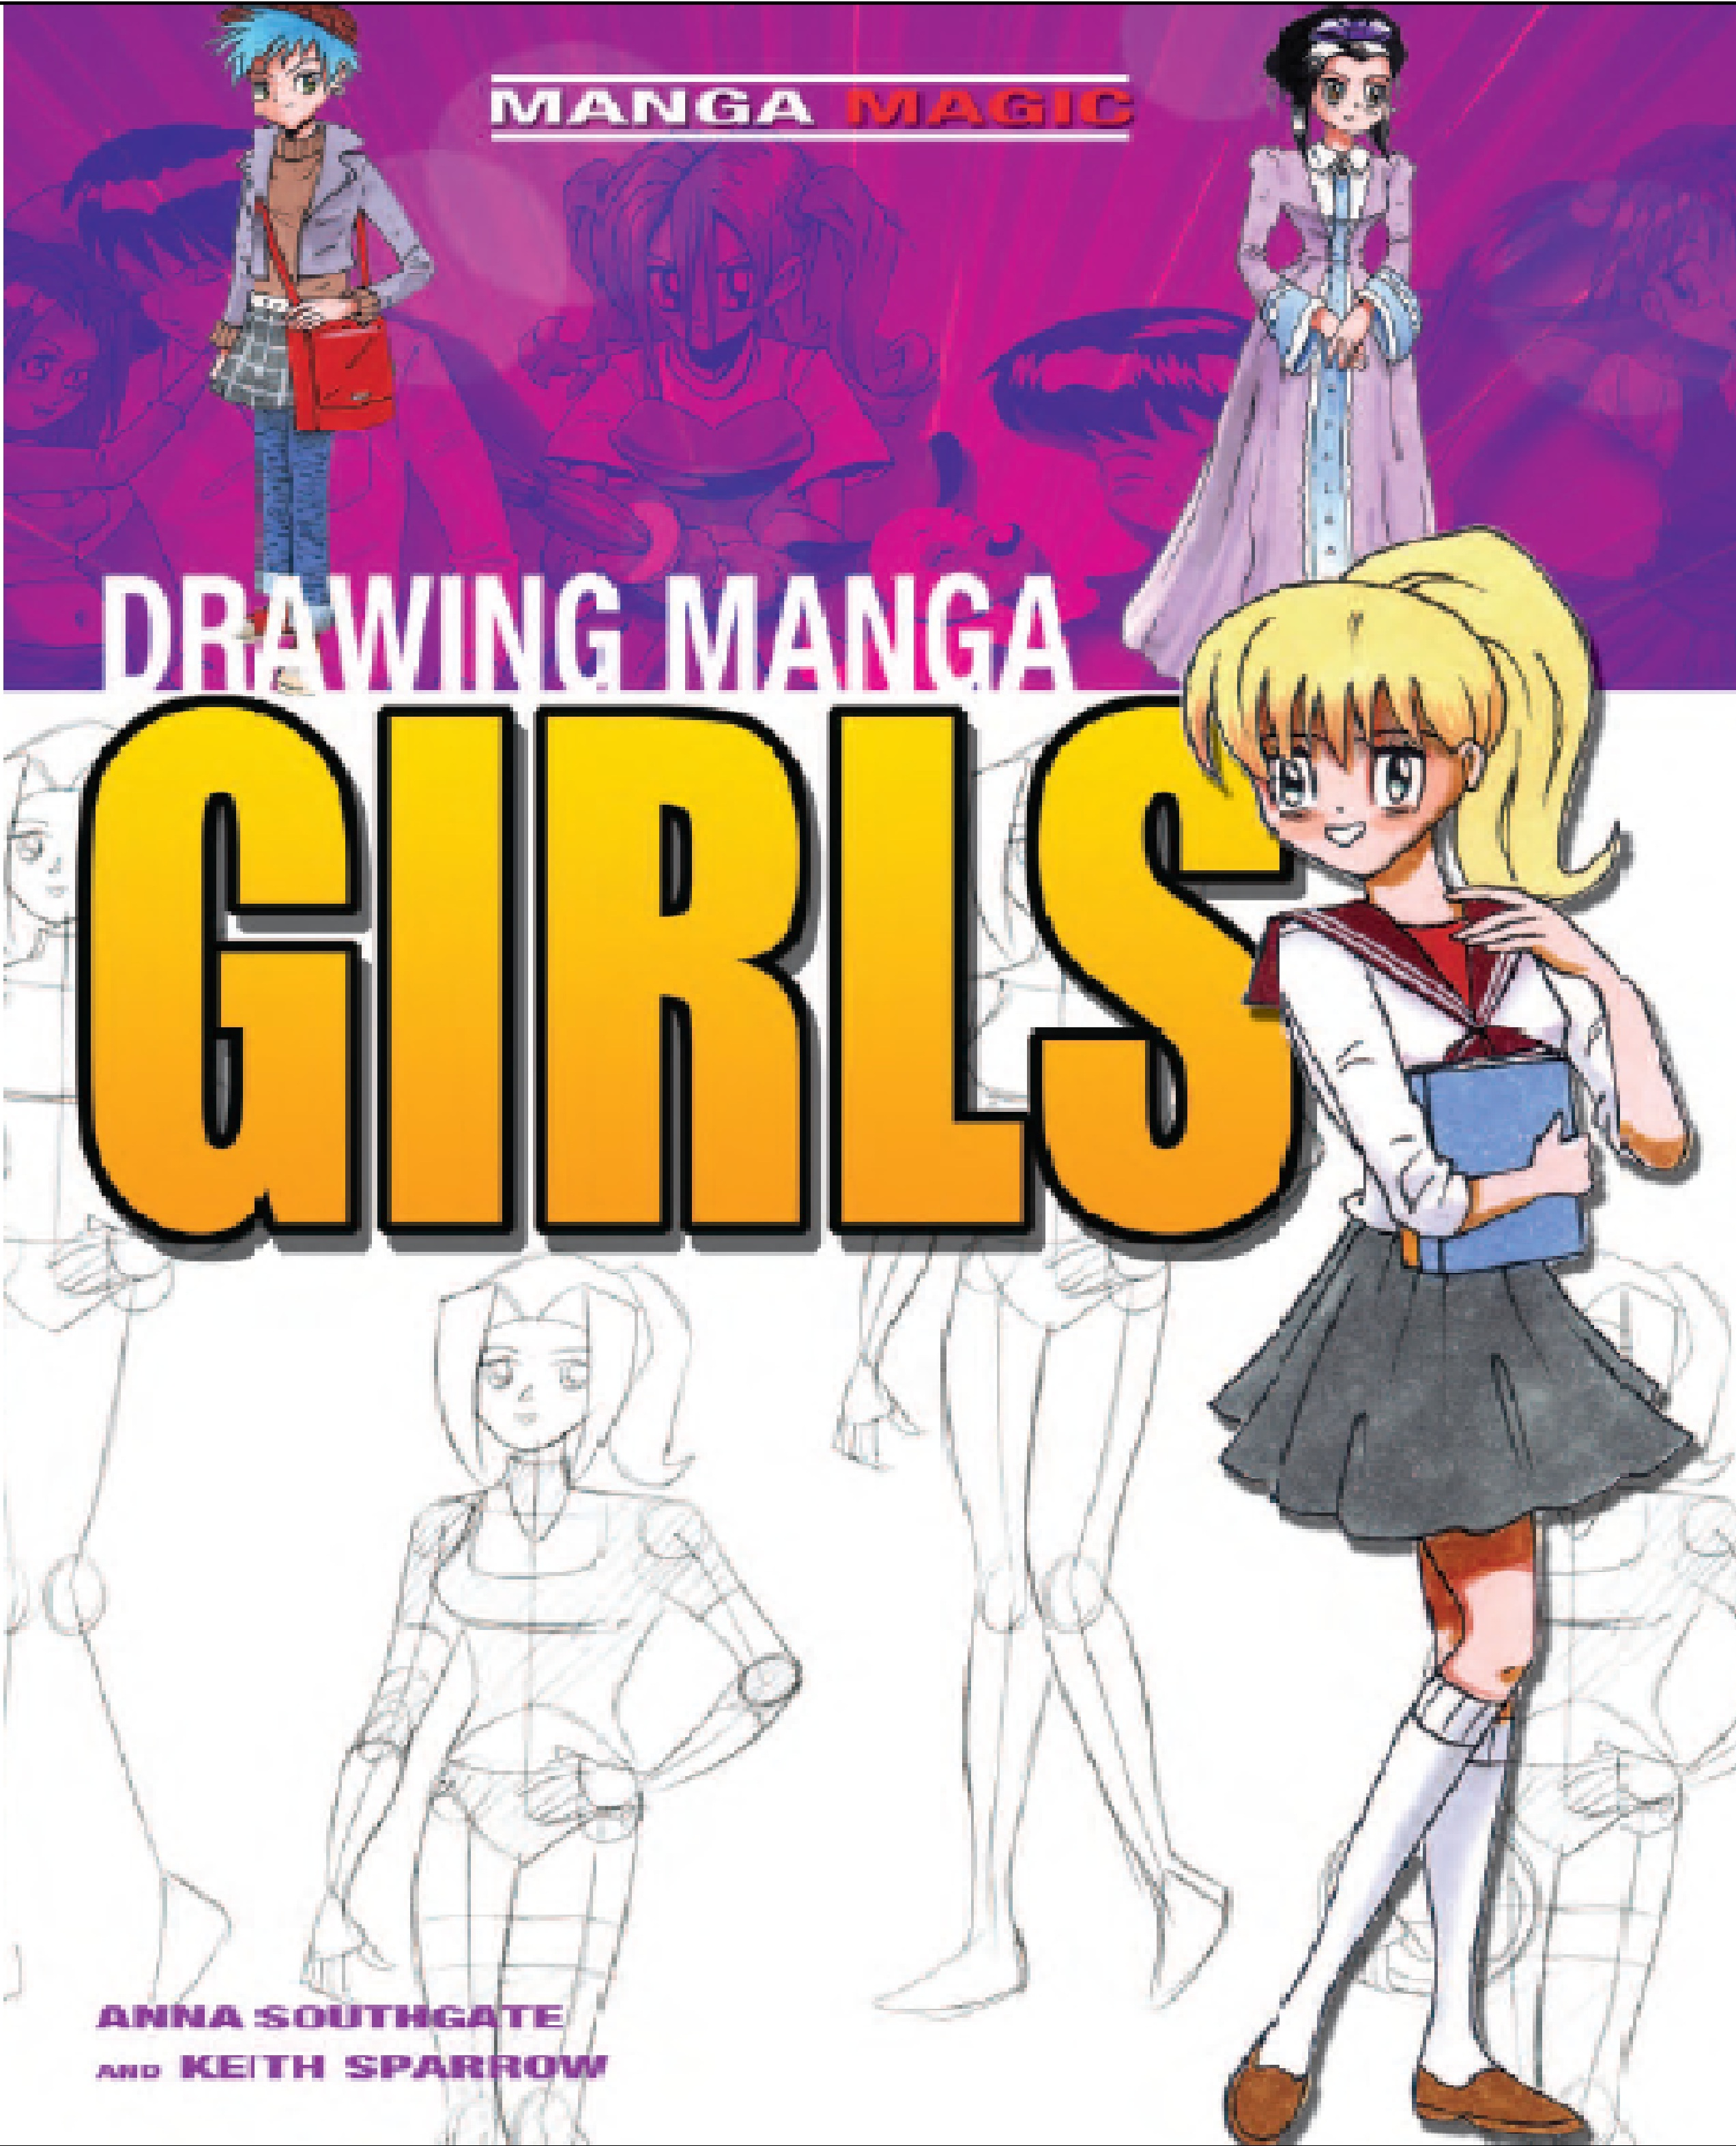 Clipart manga pdf svg freeuse download Drawing Manga Girls for beginners by kayanimeproductions on DeviantArt svg freeuse download